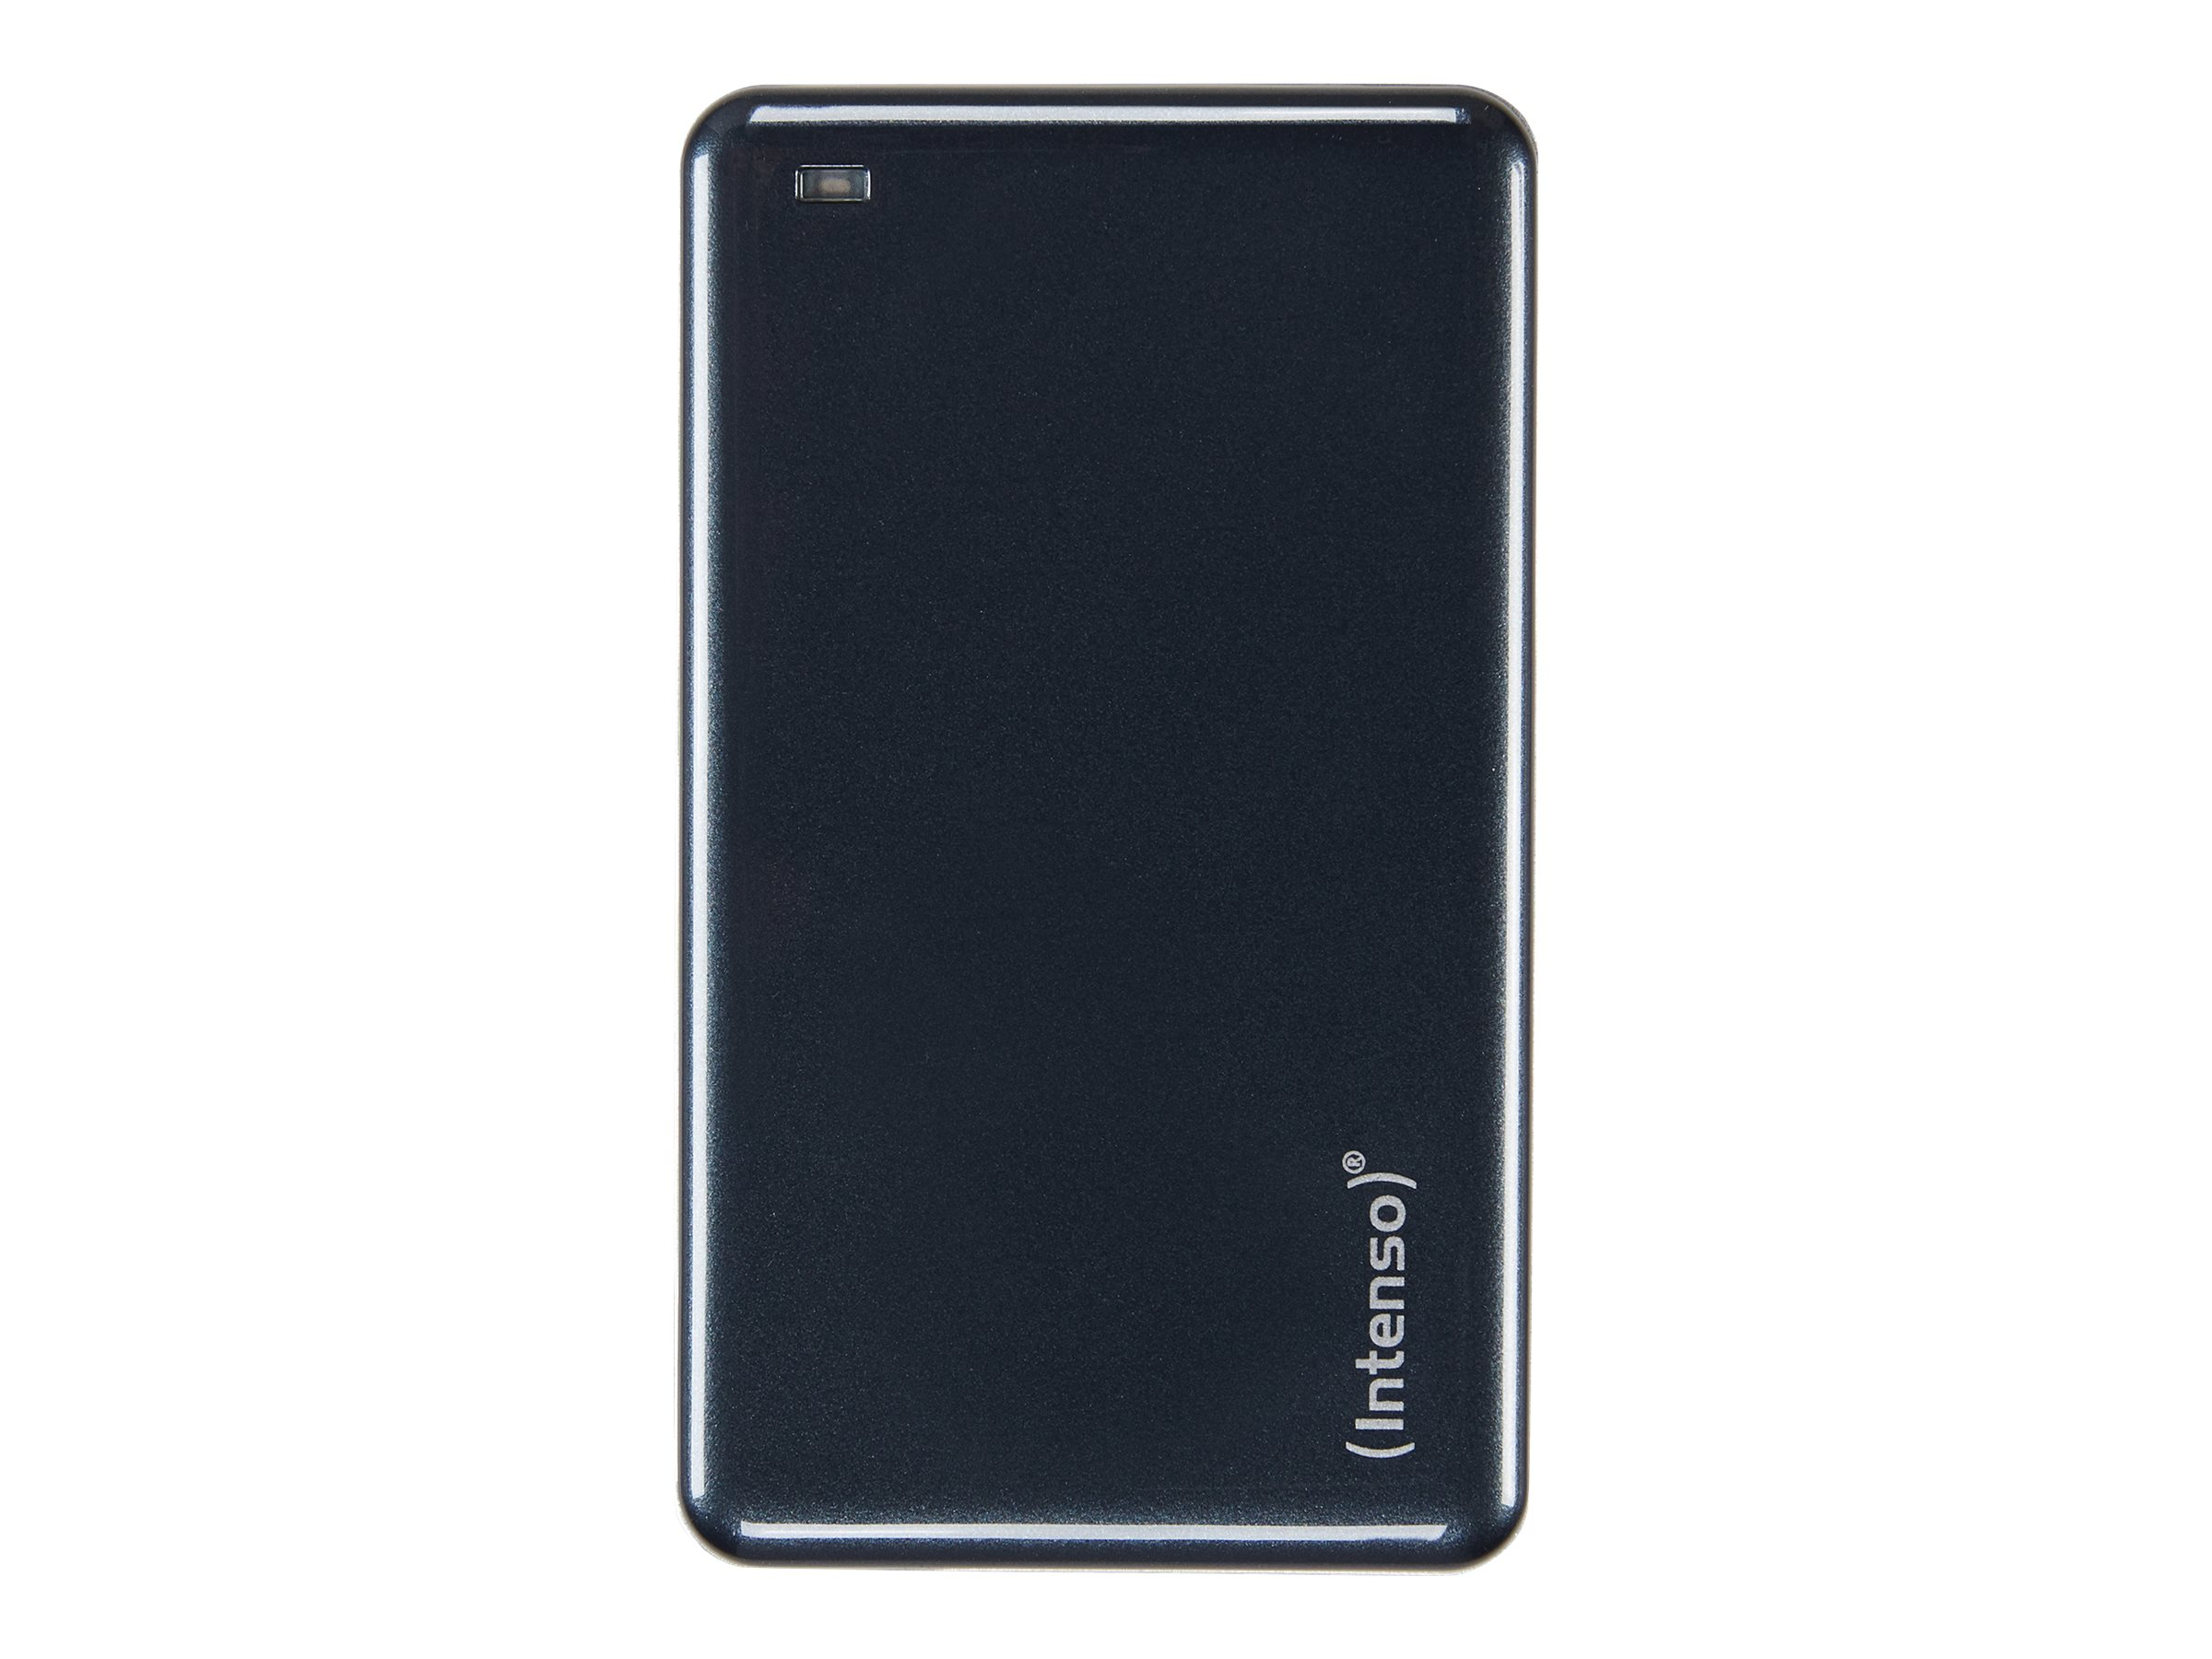 Intenso - Solid-State-Disk - 128 GB - extern (tragbar) - 4.6 cm (1.8